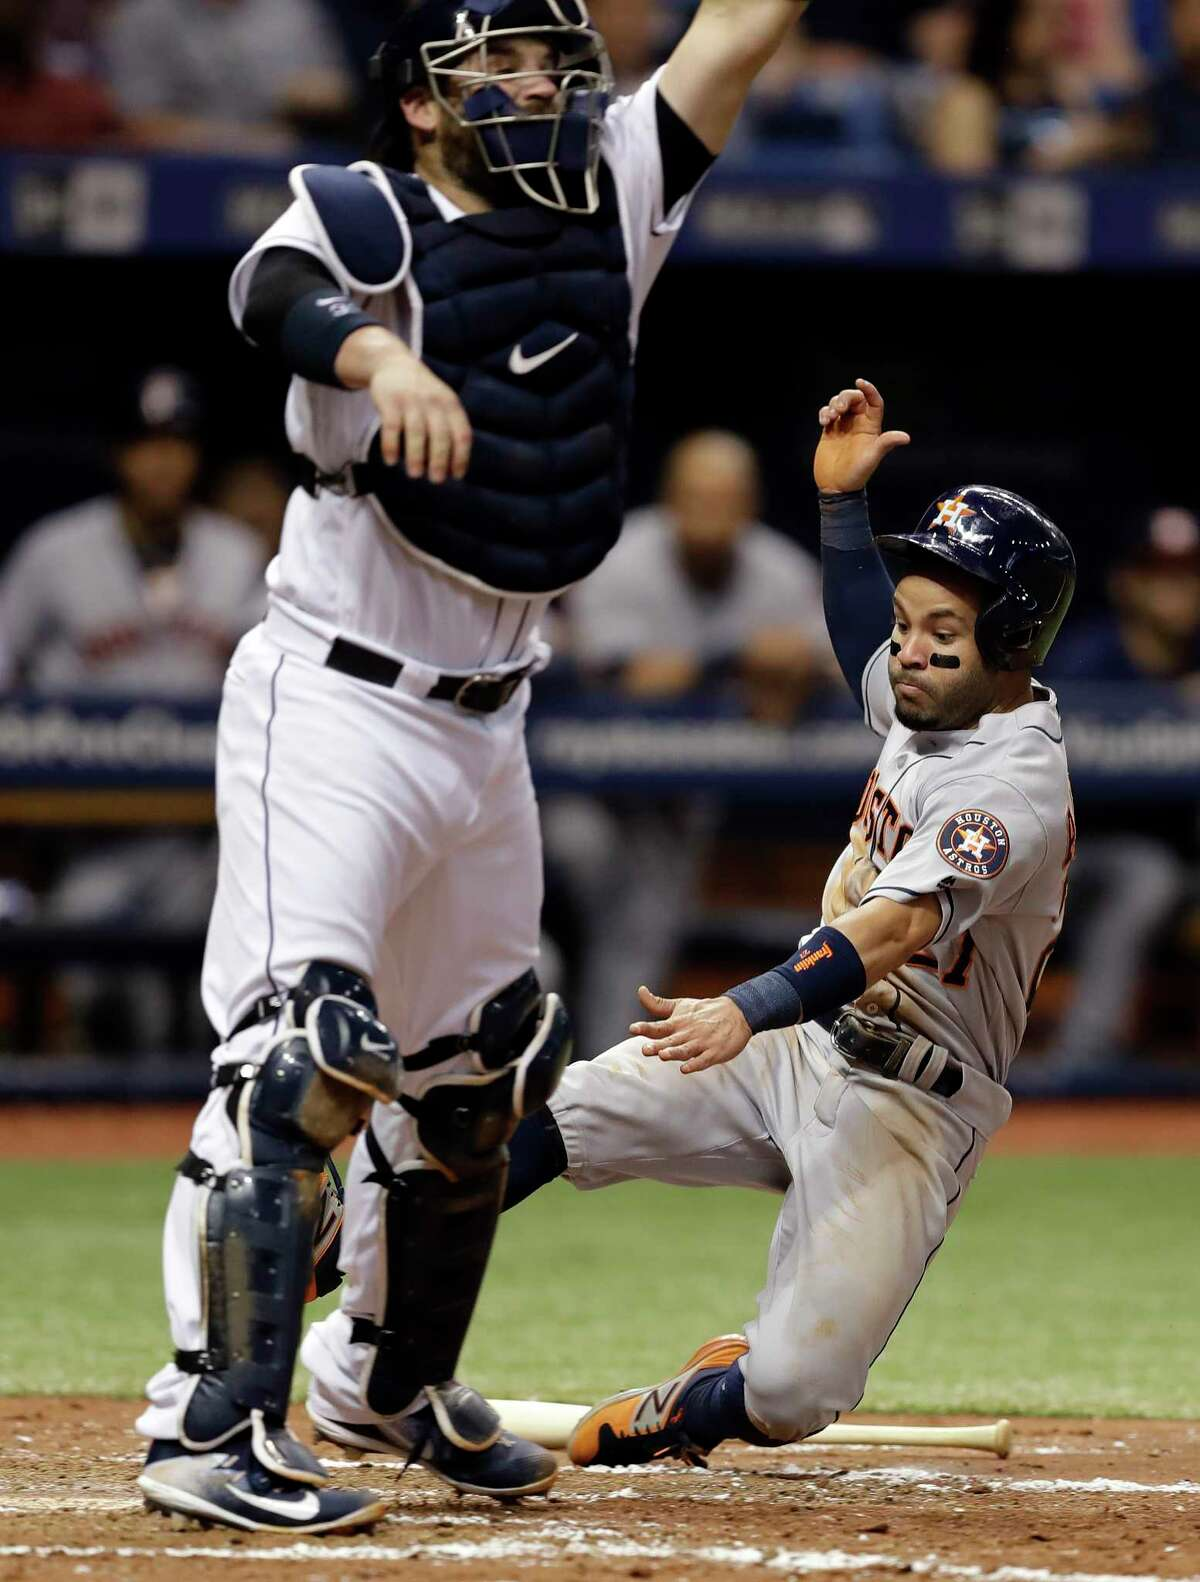 The Astros' Jose Altuve slides in under a high throw to Rays catcher Derek Norris on a grounder by Evan Gattis in the sixth inning. Altuve was 1-for-3 with his first home run of the season in Saturday's 6-3 loss.